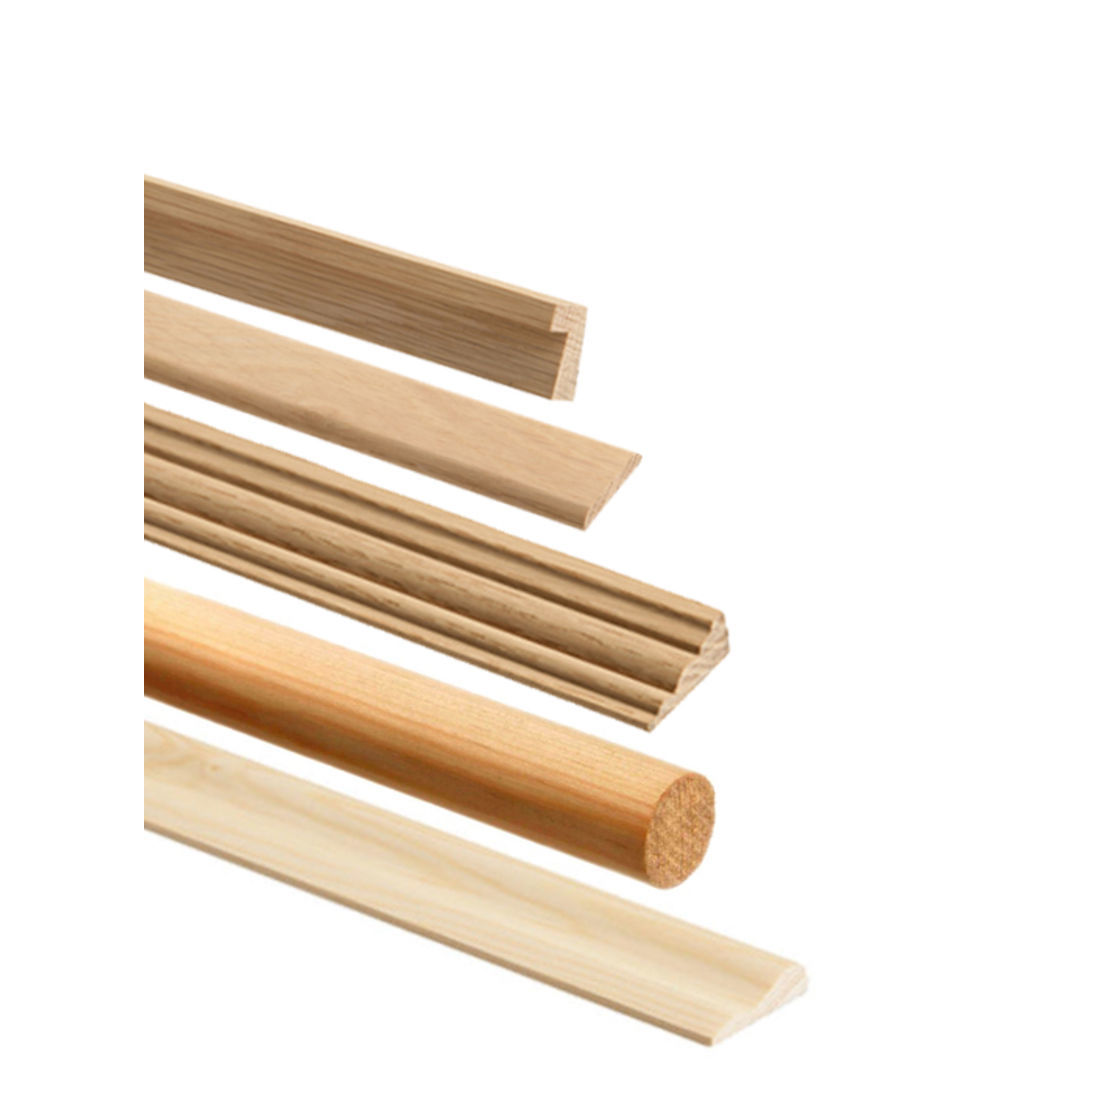 Assorted Timber Mouldings image-2